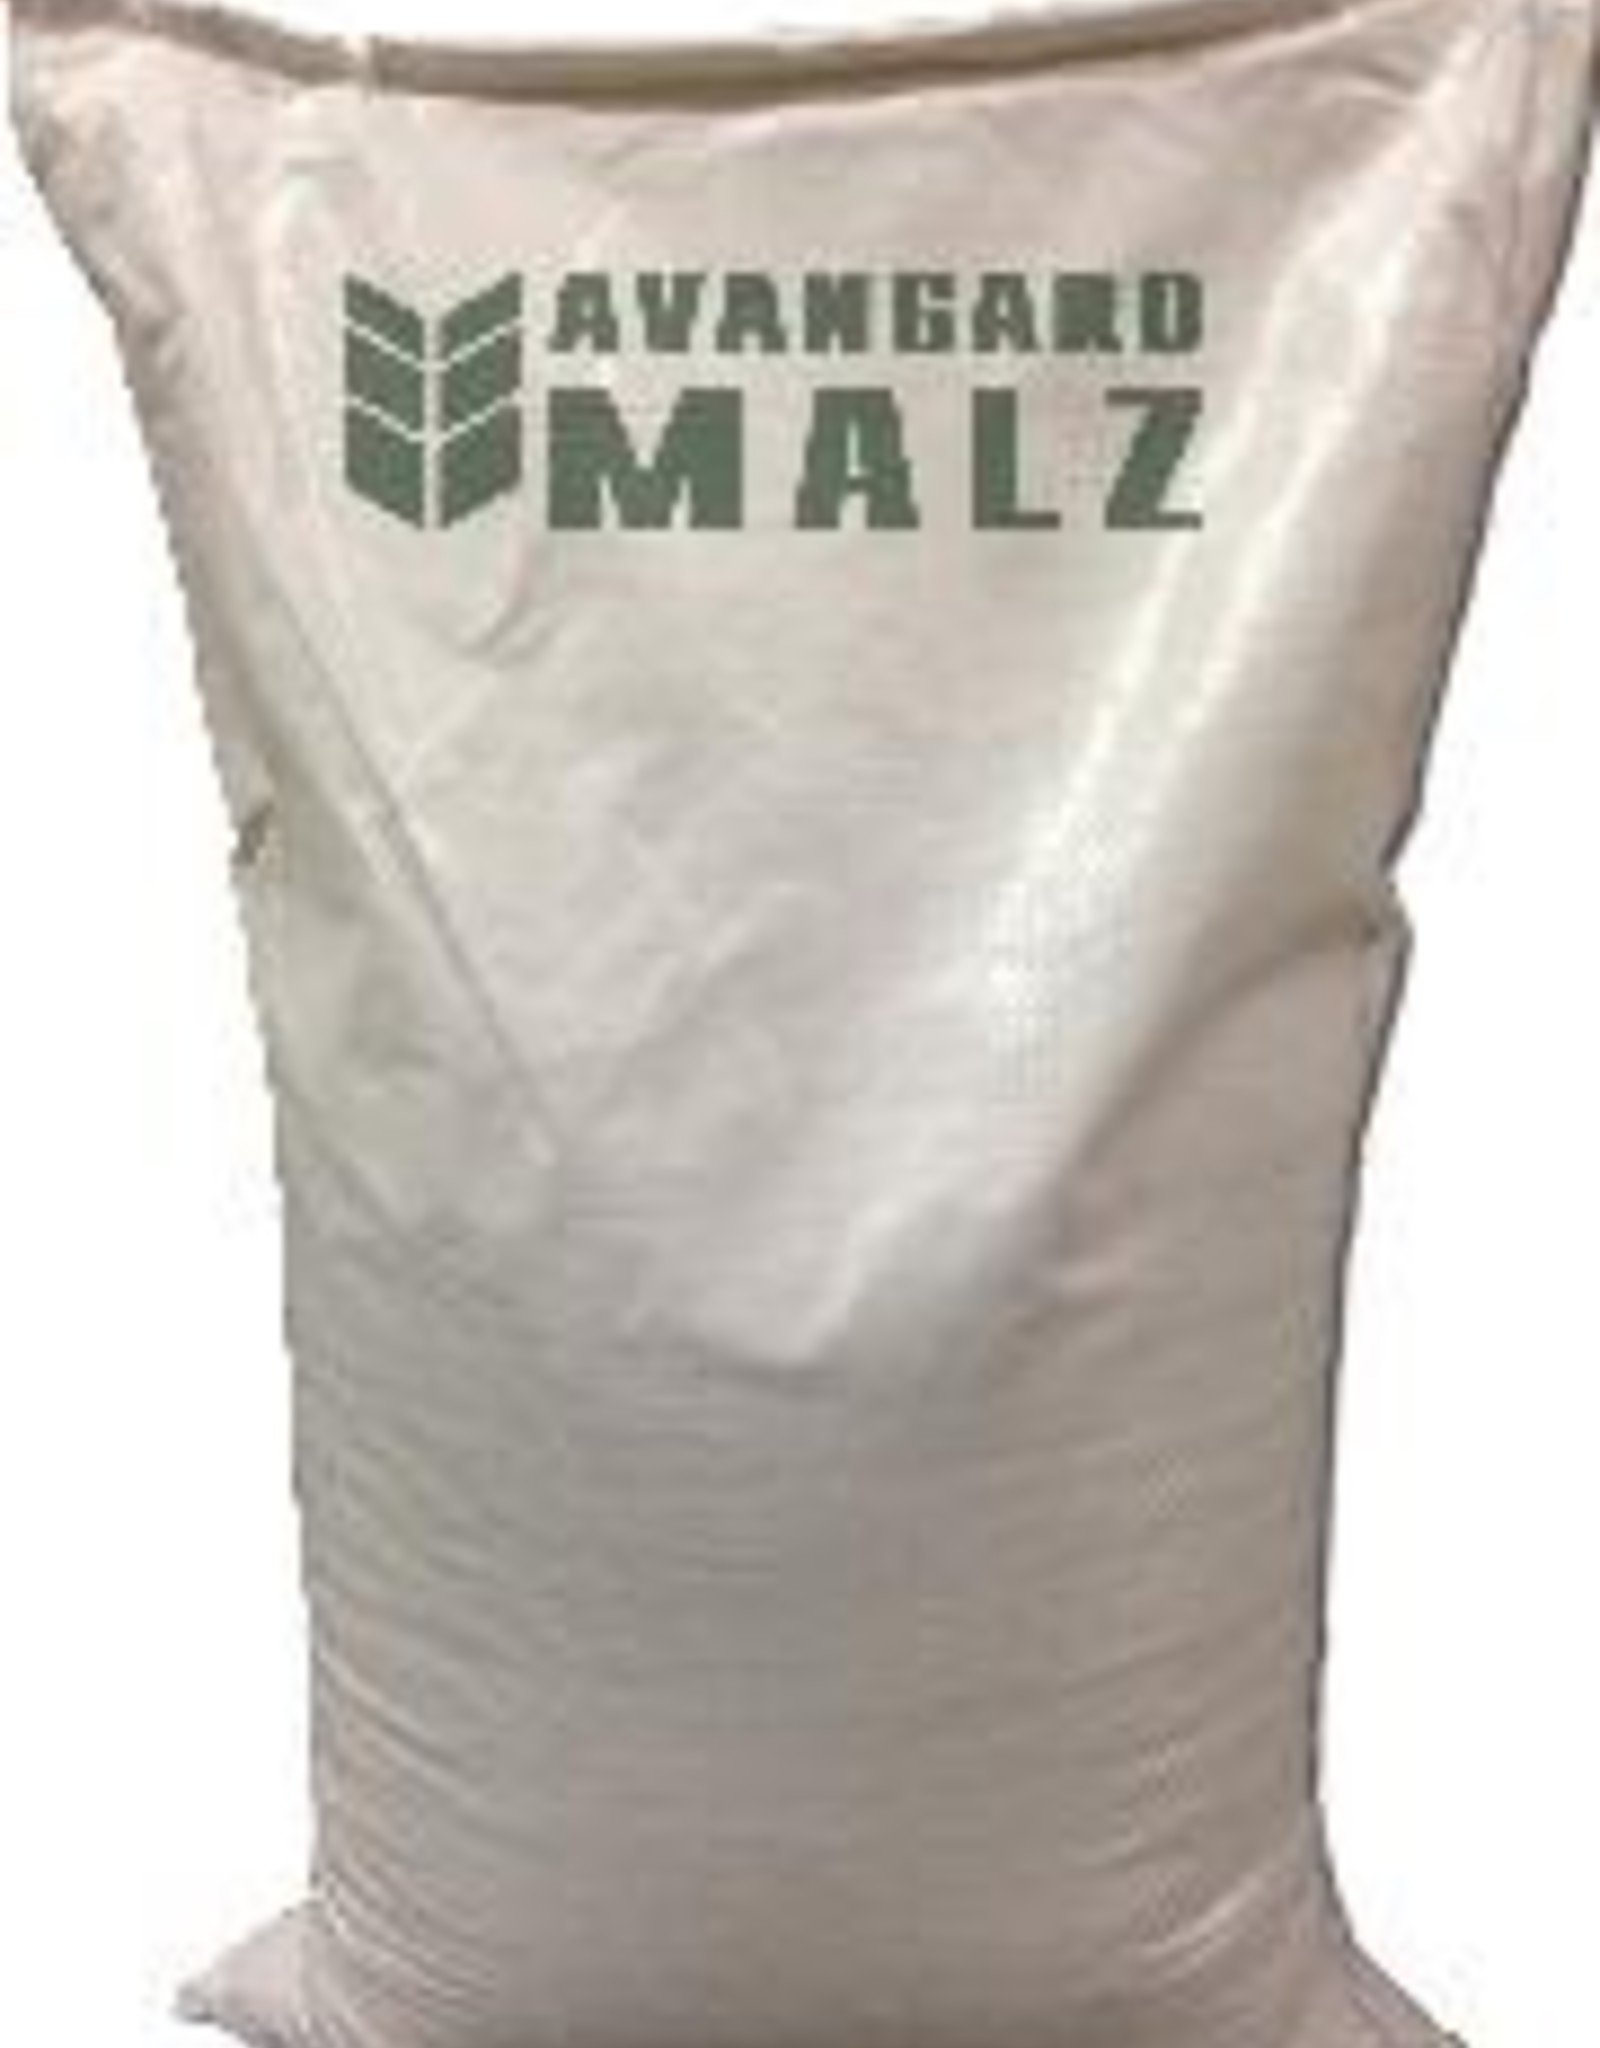 AVANGARD Specialty grain for increasing color and sweetness